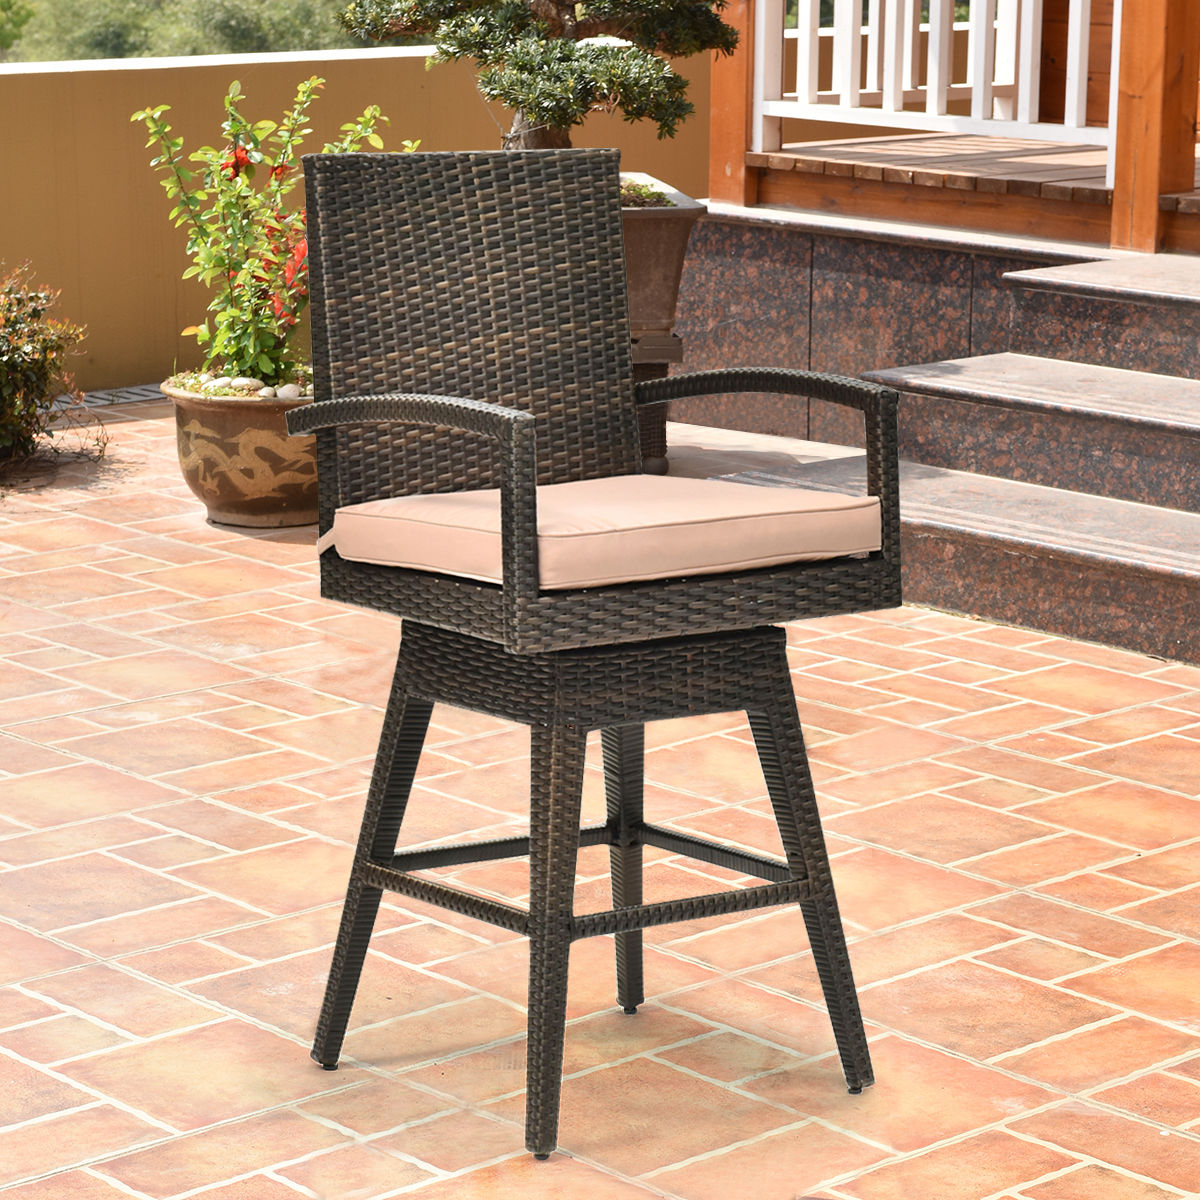 Costway Outdoor Wicker Swivel Bar Stool Chair Patio Backyard Furniture W/ Seat Cushion